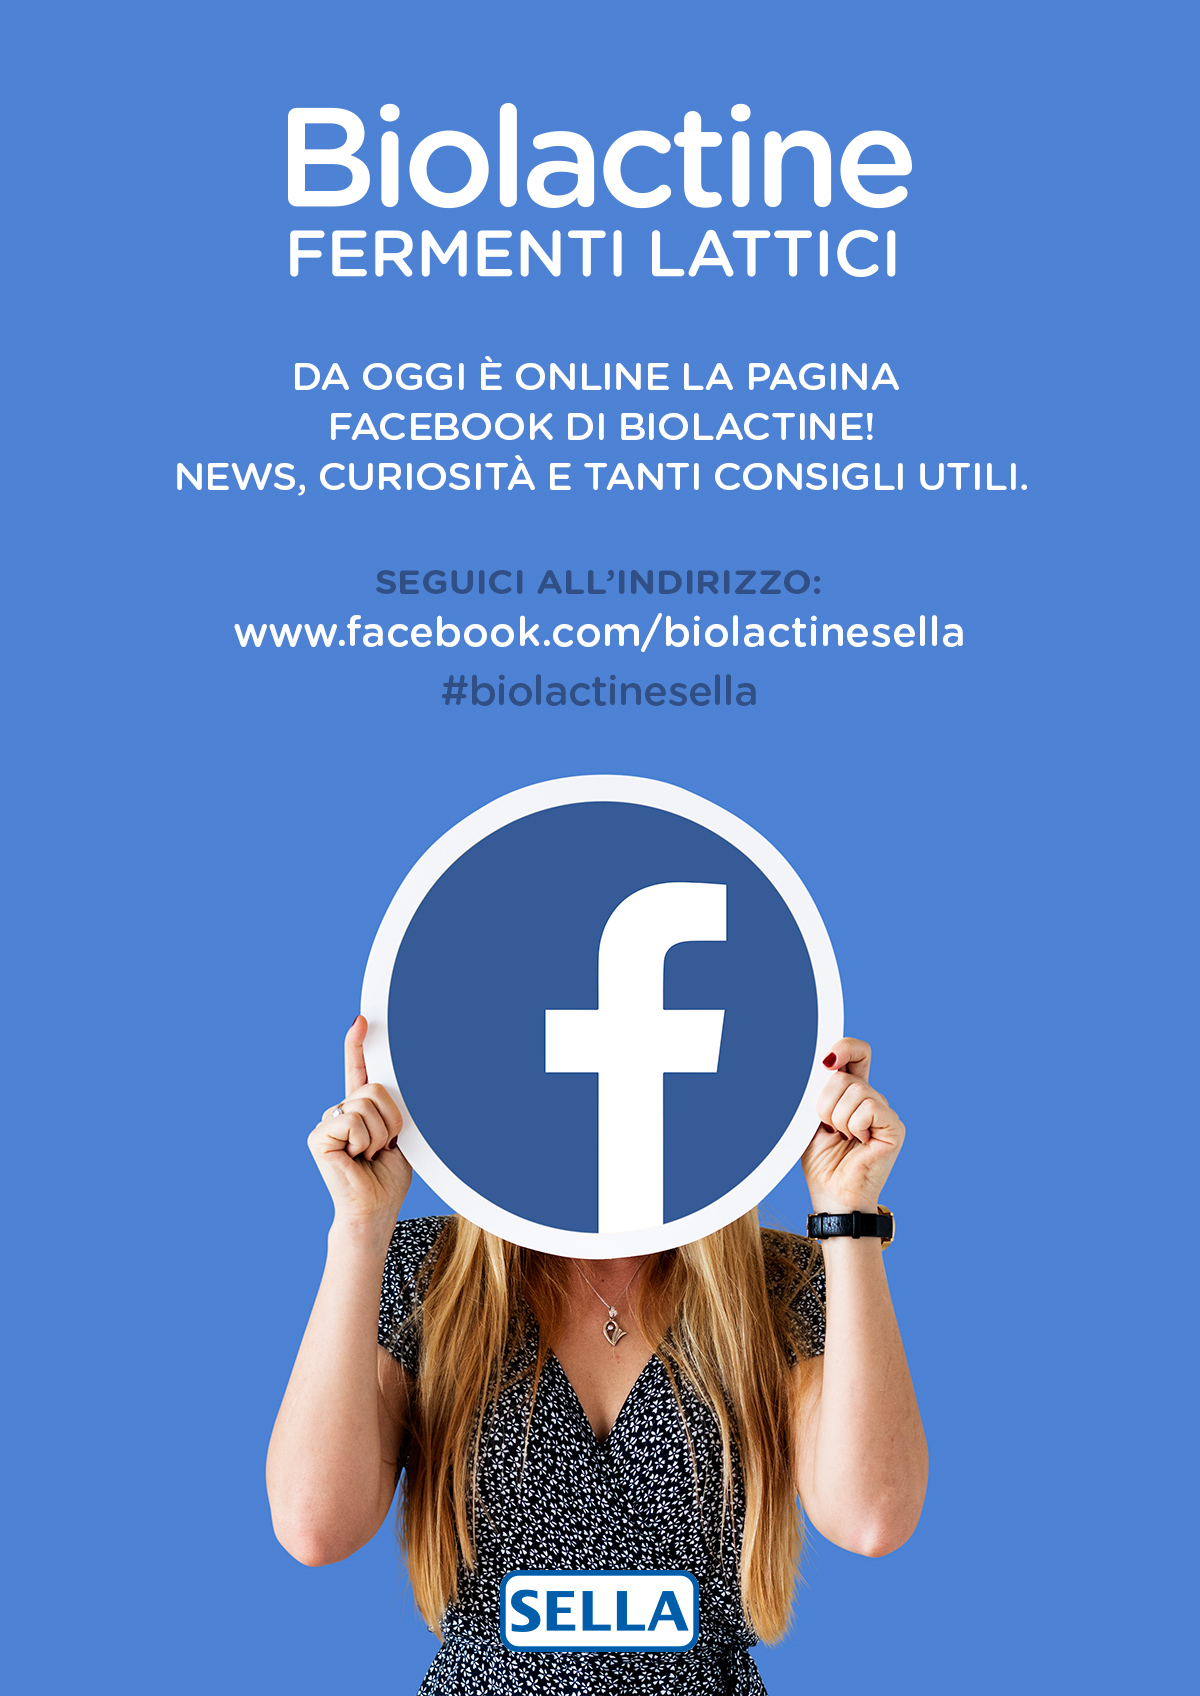 Biolactione Sella su Facebook